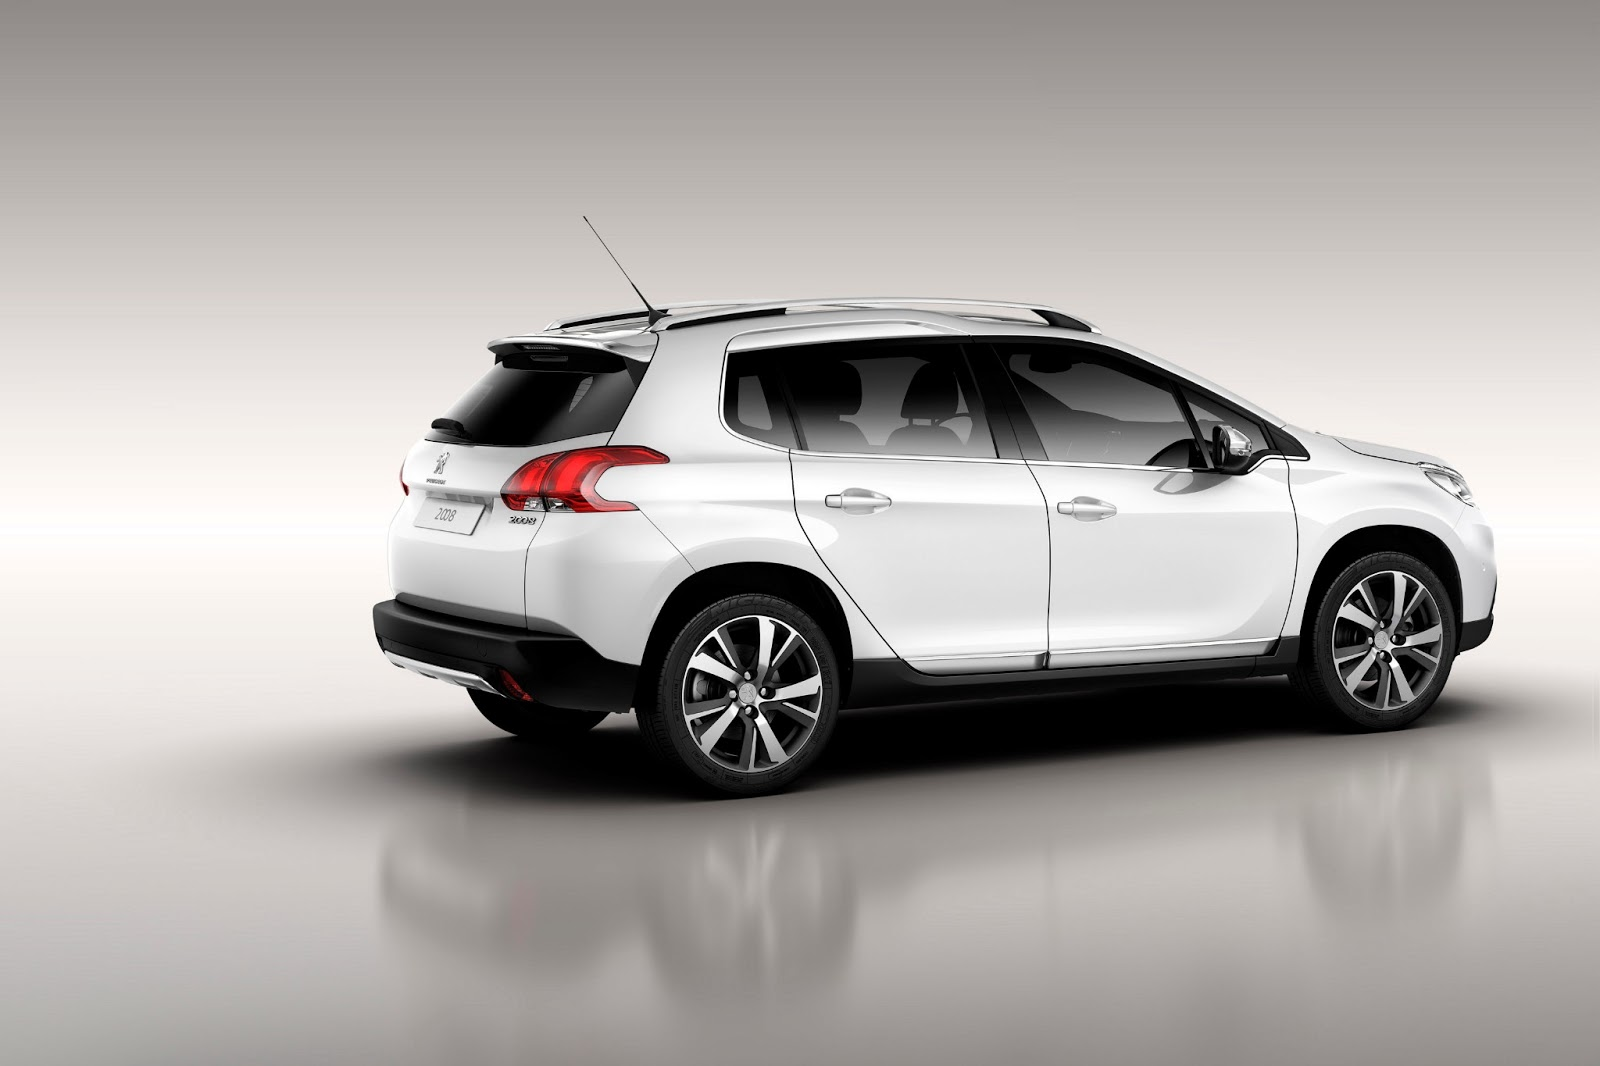 peugeot 2008 crossover 2013 pictures wallpapers images interiors and exteriors specifications. Black Bedroom Furniture Sets. Home Design Ideas